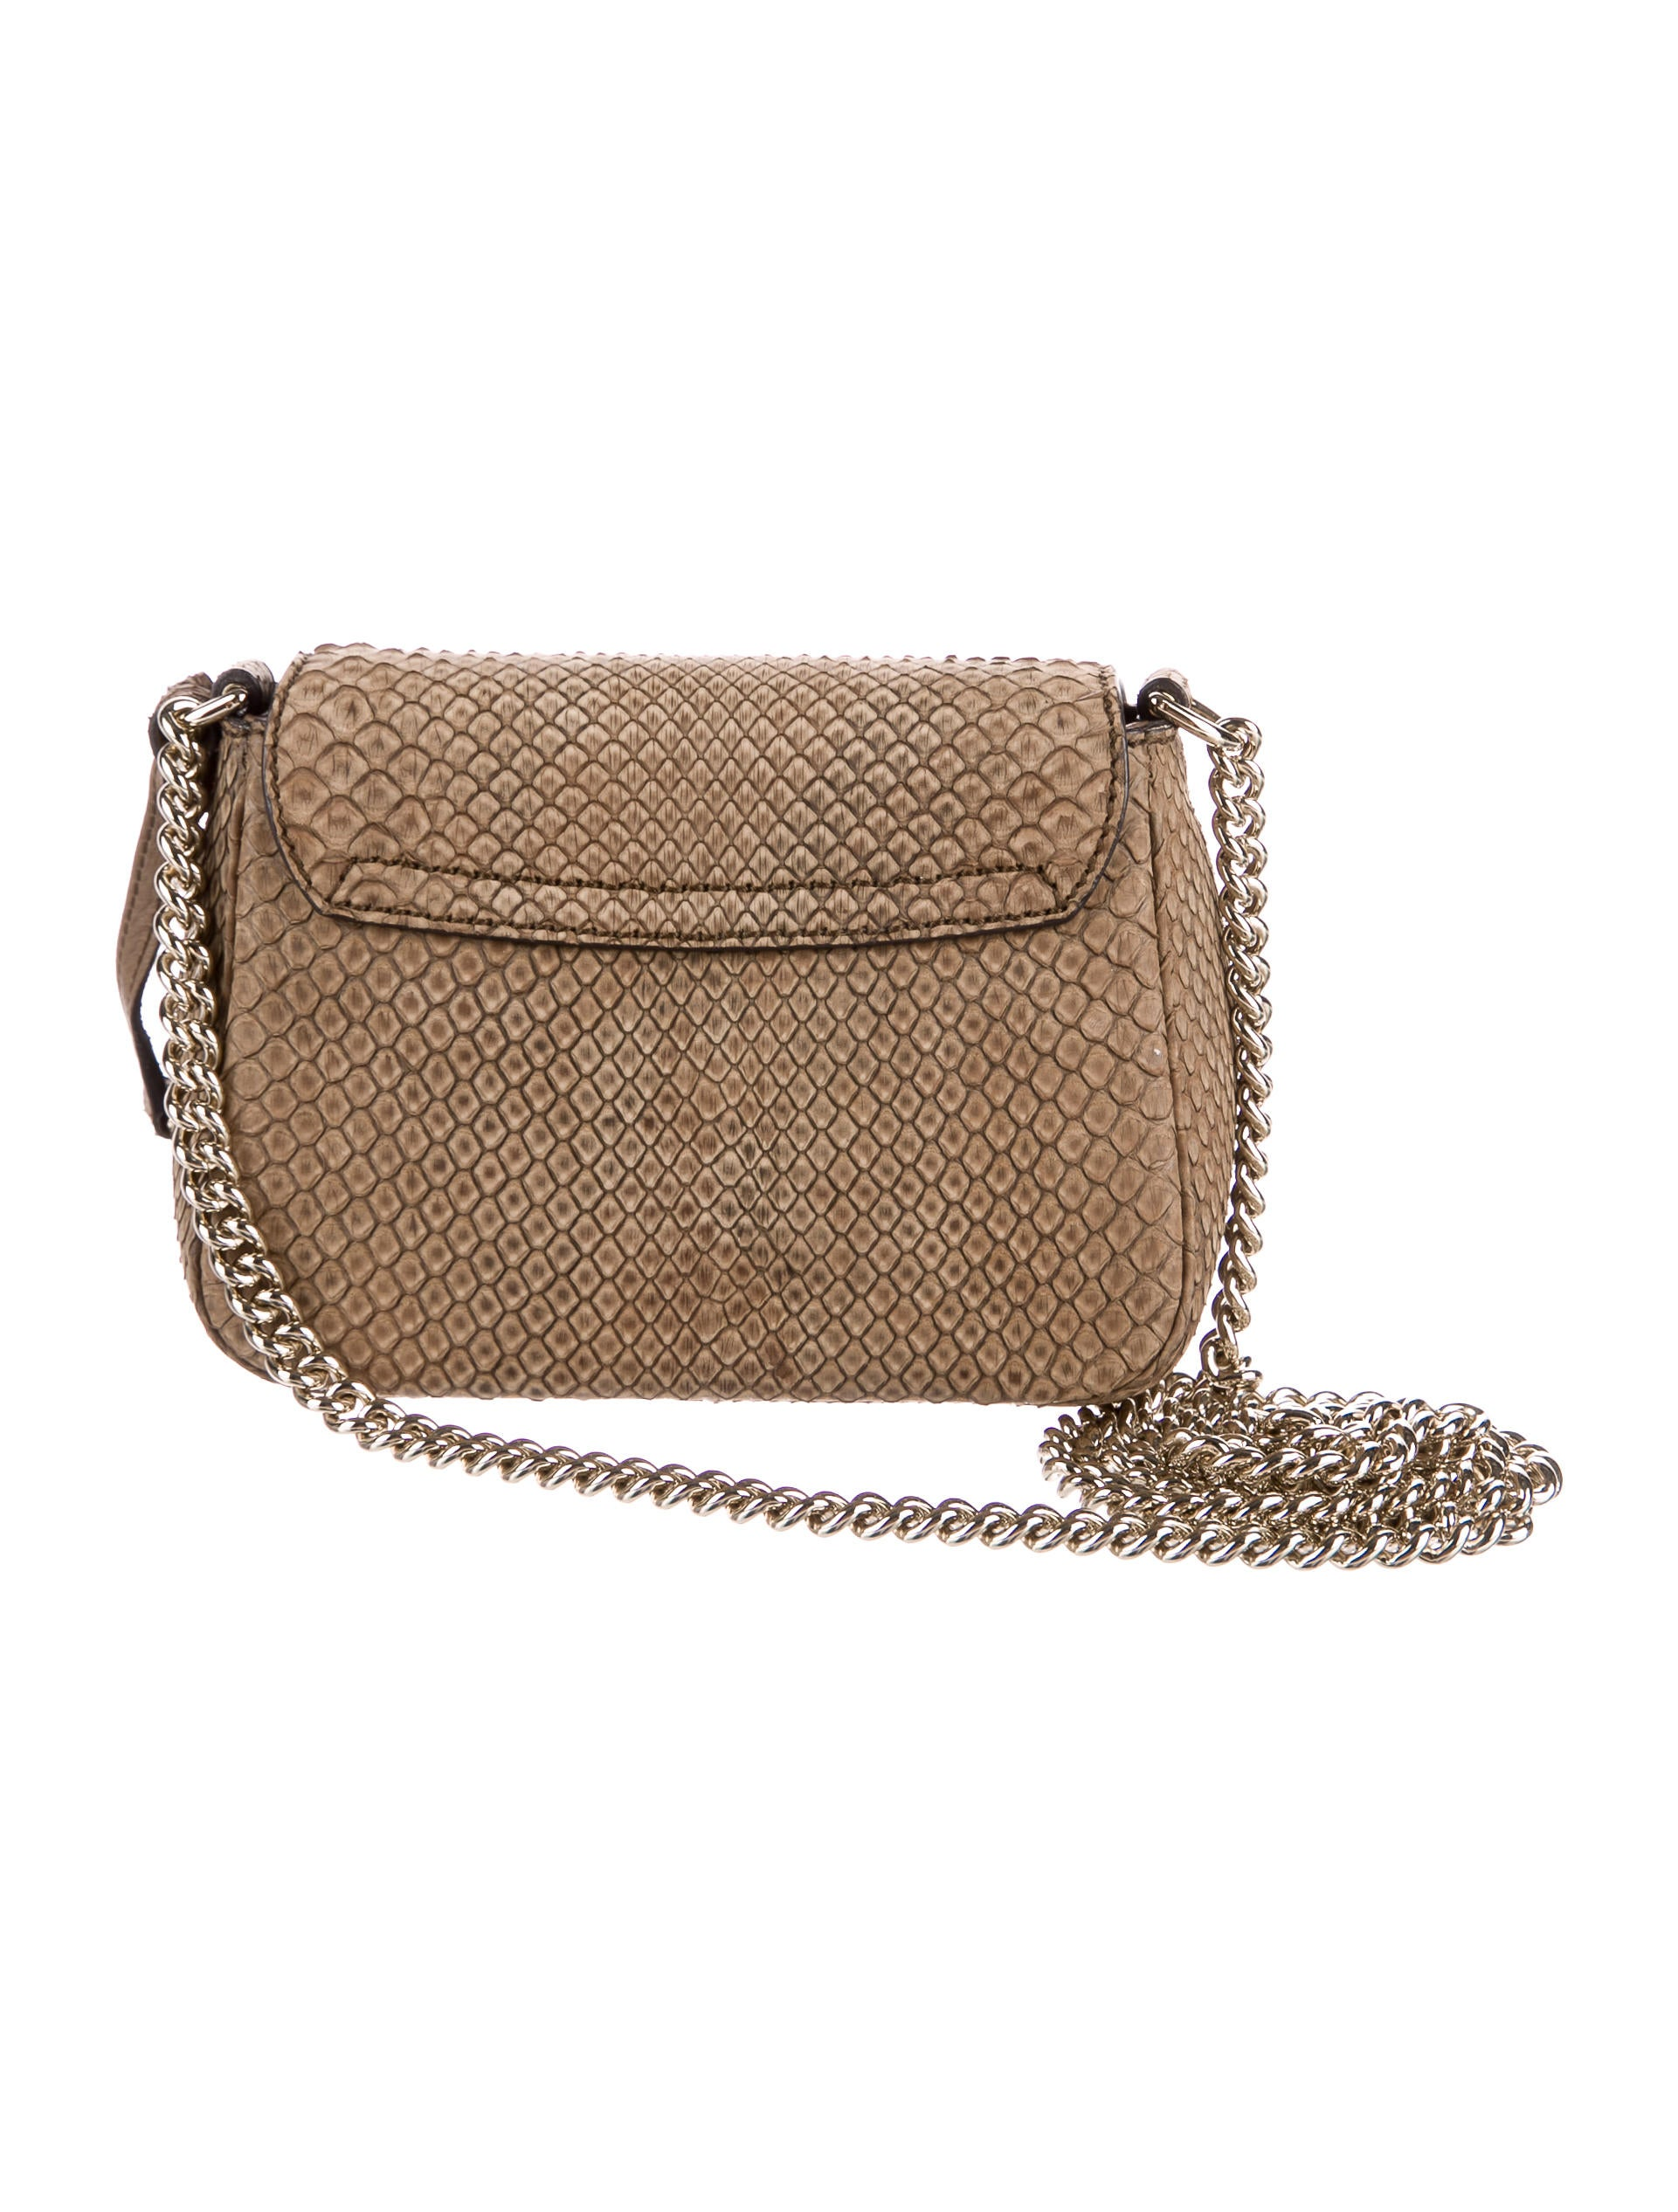 5e86d30685e595 Gucci Crossbody Snake Bag | Stanford Center for Opportunity Policy ...